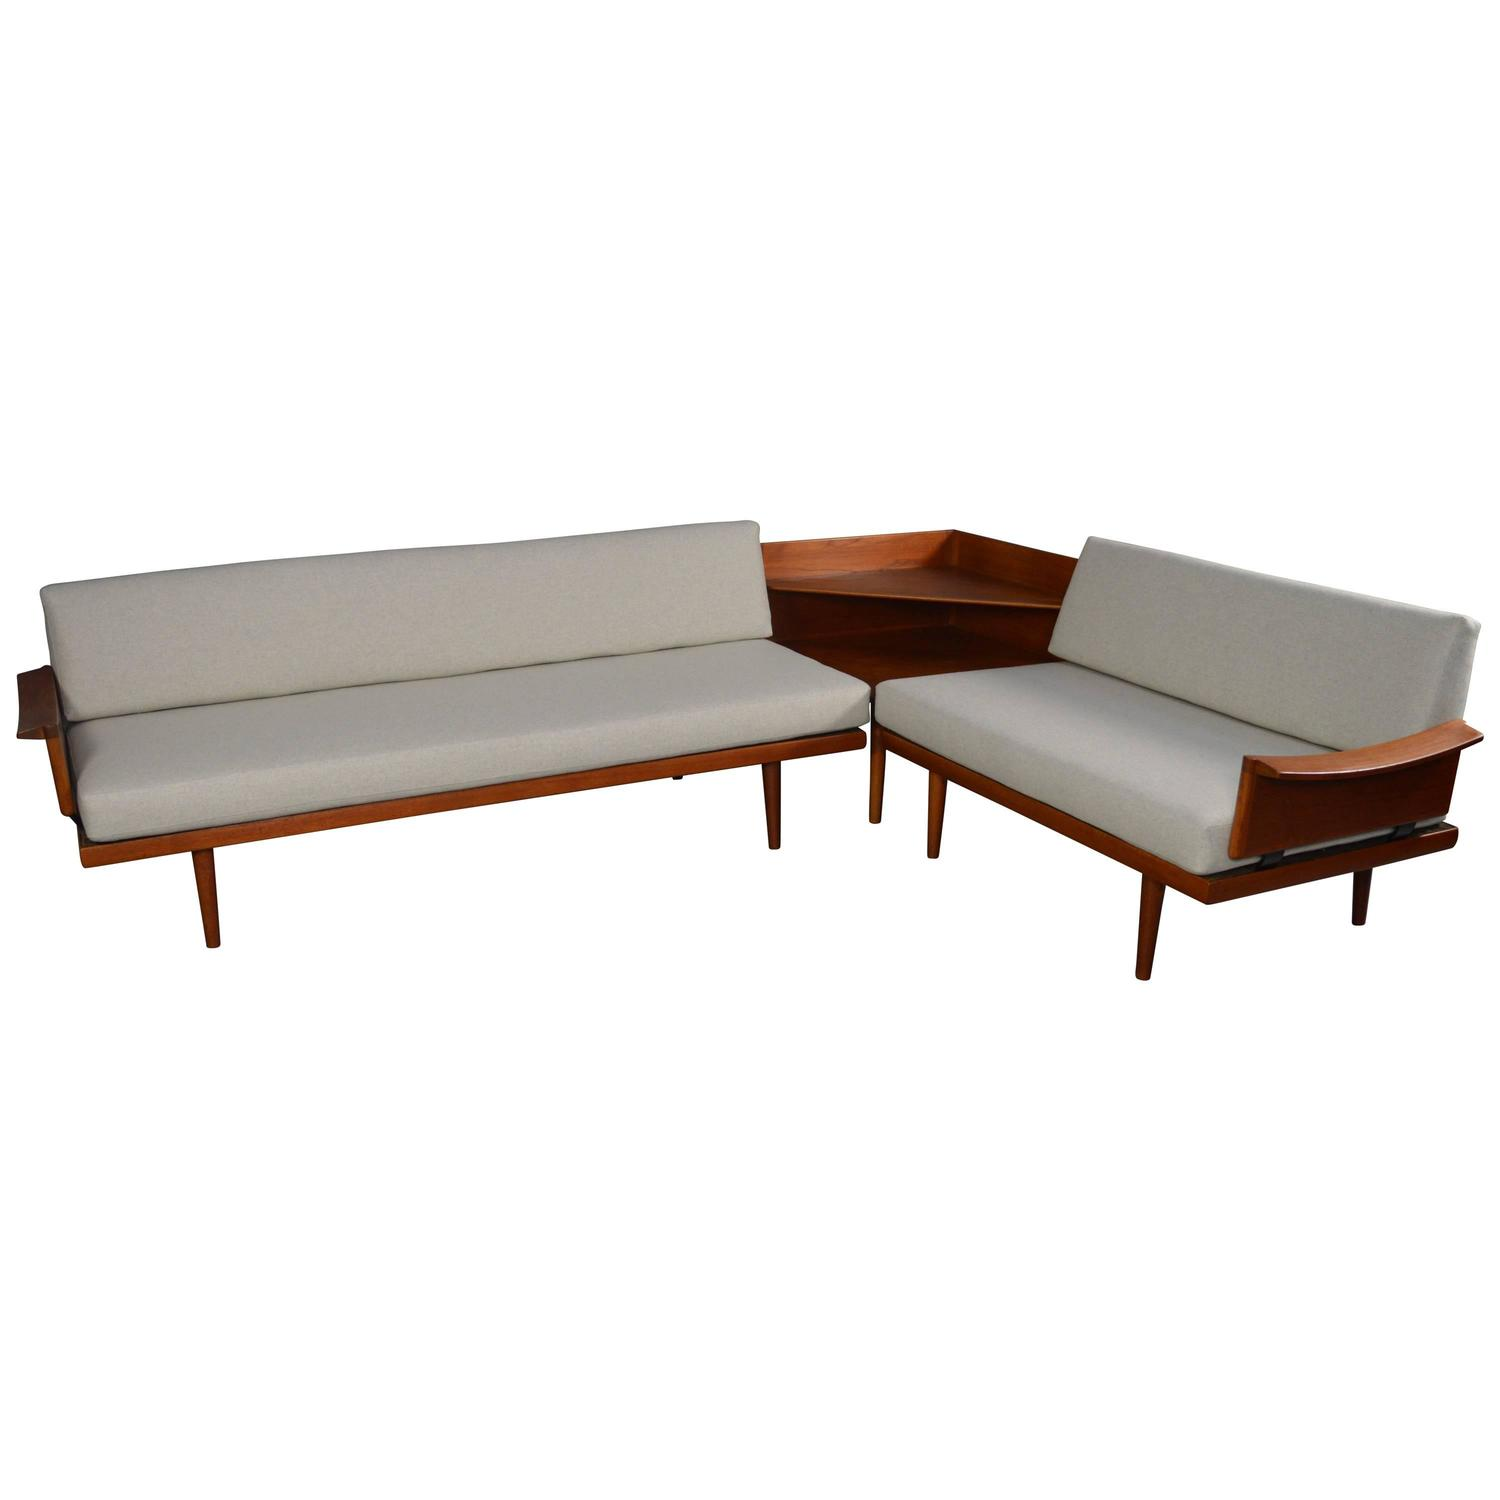 Edvard and Tove Kindt Larsen Teak Daybed Sofa Set and Corner Table